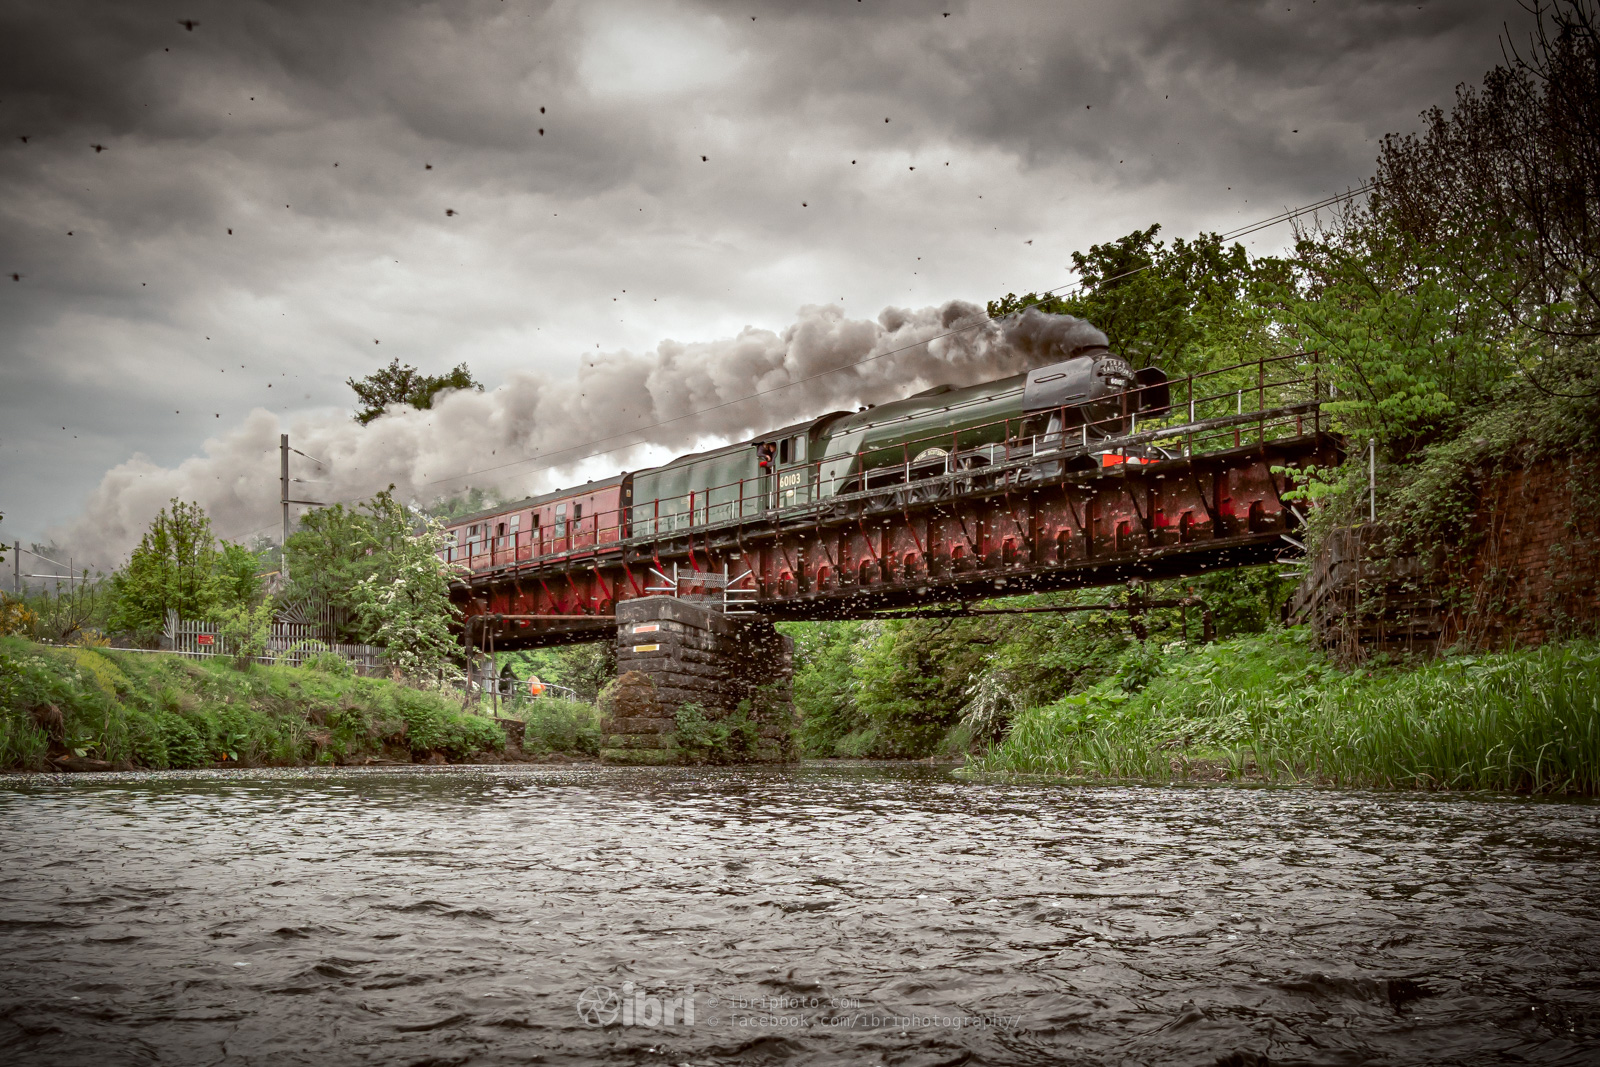 Final edit - can just about make out the train in amongst the clouds of Scottish midges!